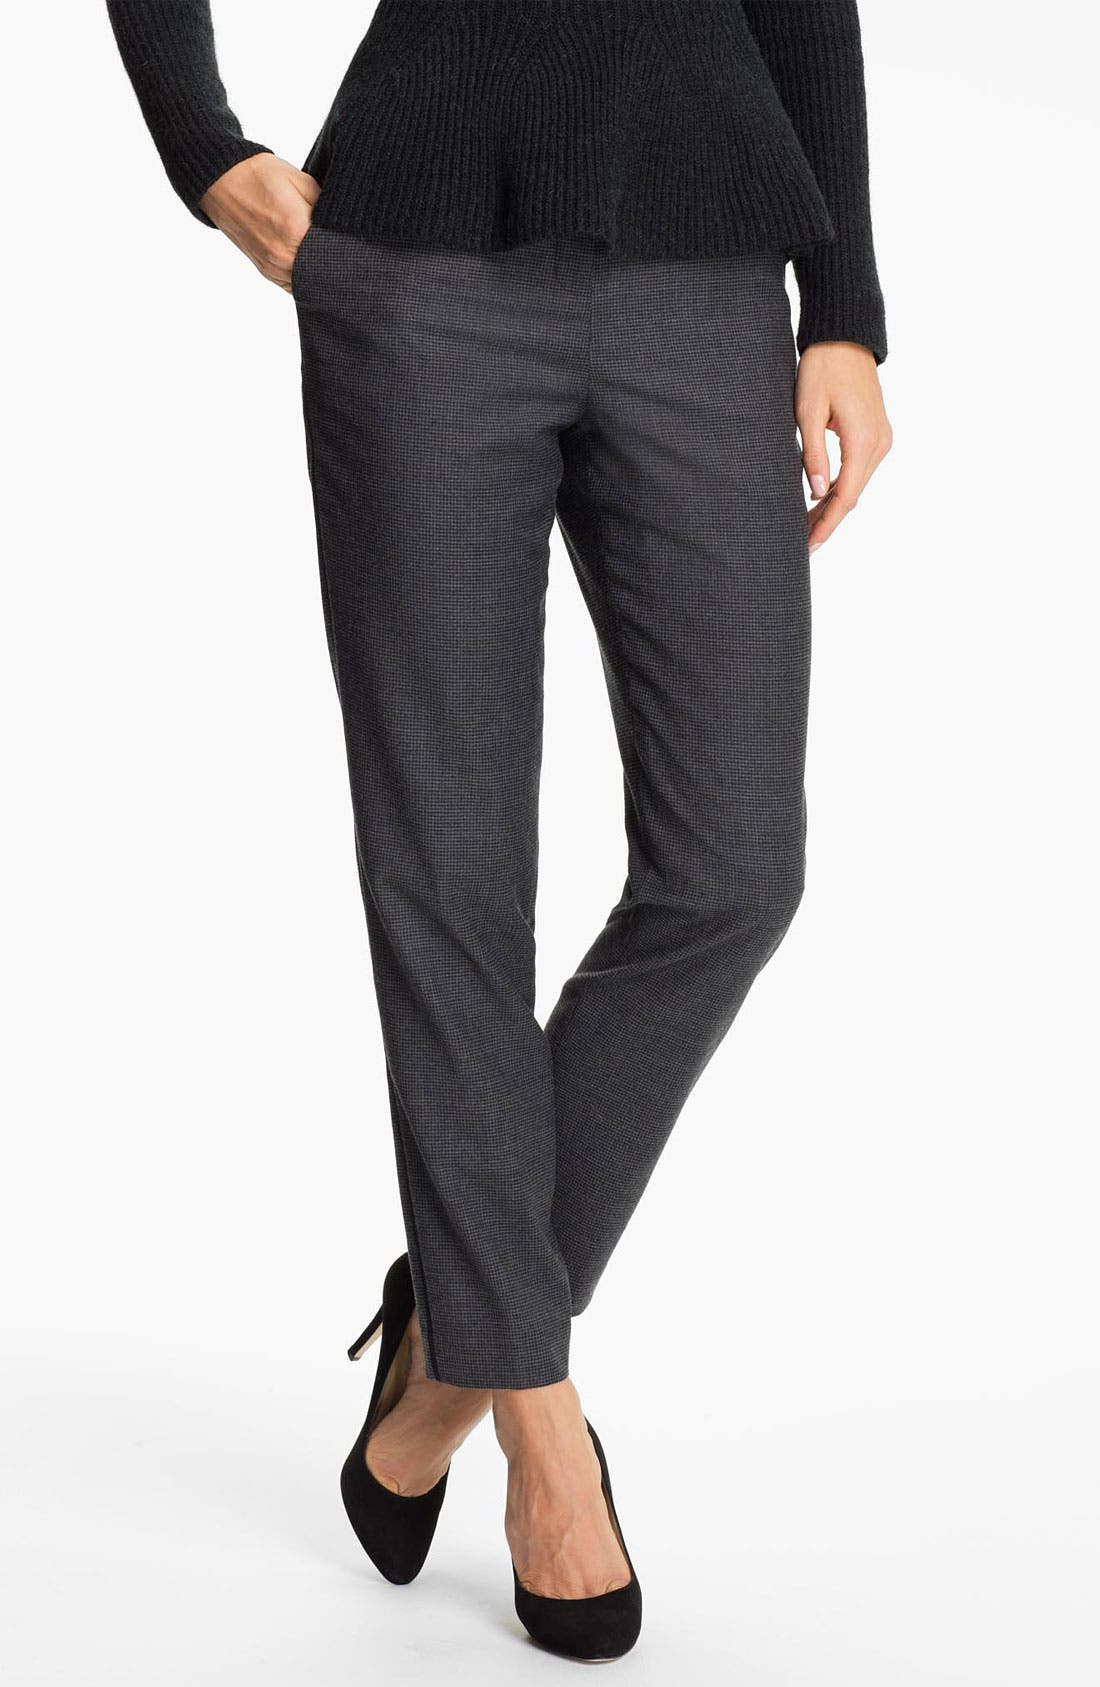 Alternate Image 1 Selected - Ted Baker London 'Rhit' Wool Blend Ankle Trousers